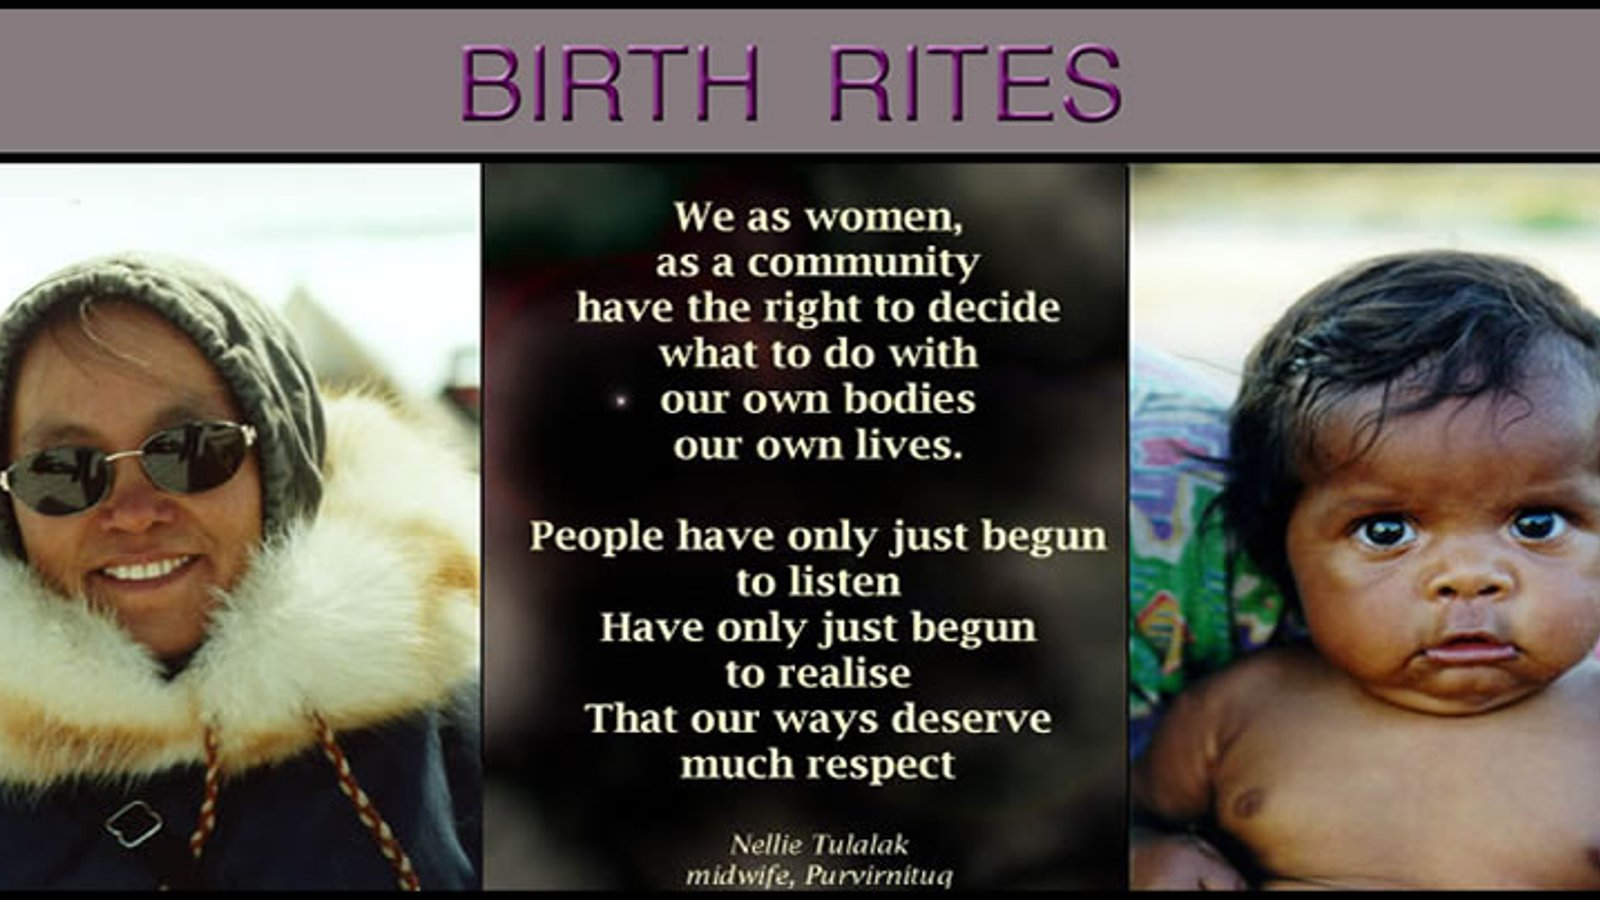 Birth Rites - Birthing Experiences for Indigenous Women in Australia and Canada